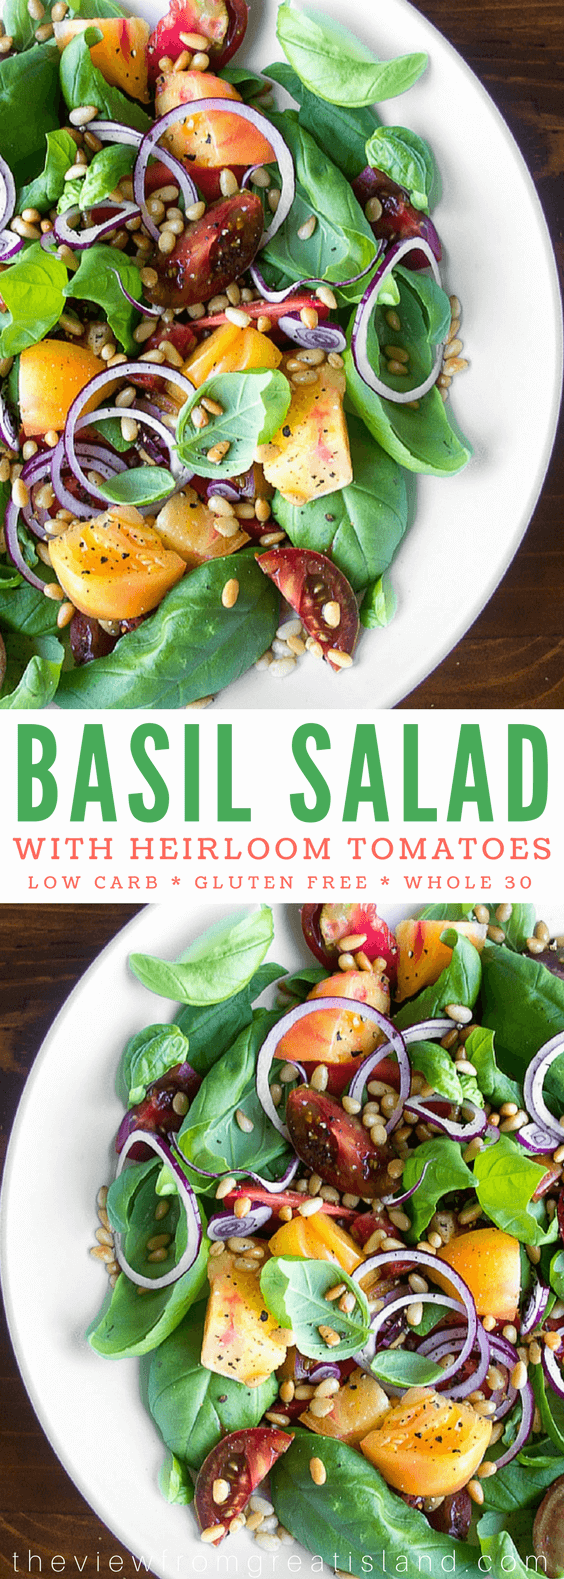 Basil Salad with Heirloom Tomaotes ~ a gluten free, low carb, weight watcher's and whole 30 friendly salad. #salad #basil #healthy #lowcarb #glutenfree #summersalad #tomatosalad #heirloomtomatoes #tomatoes